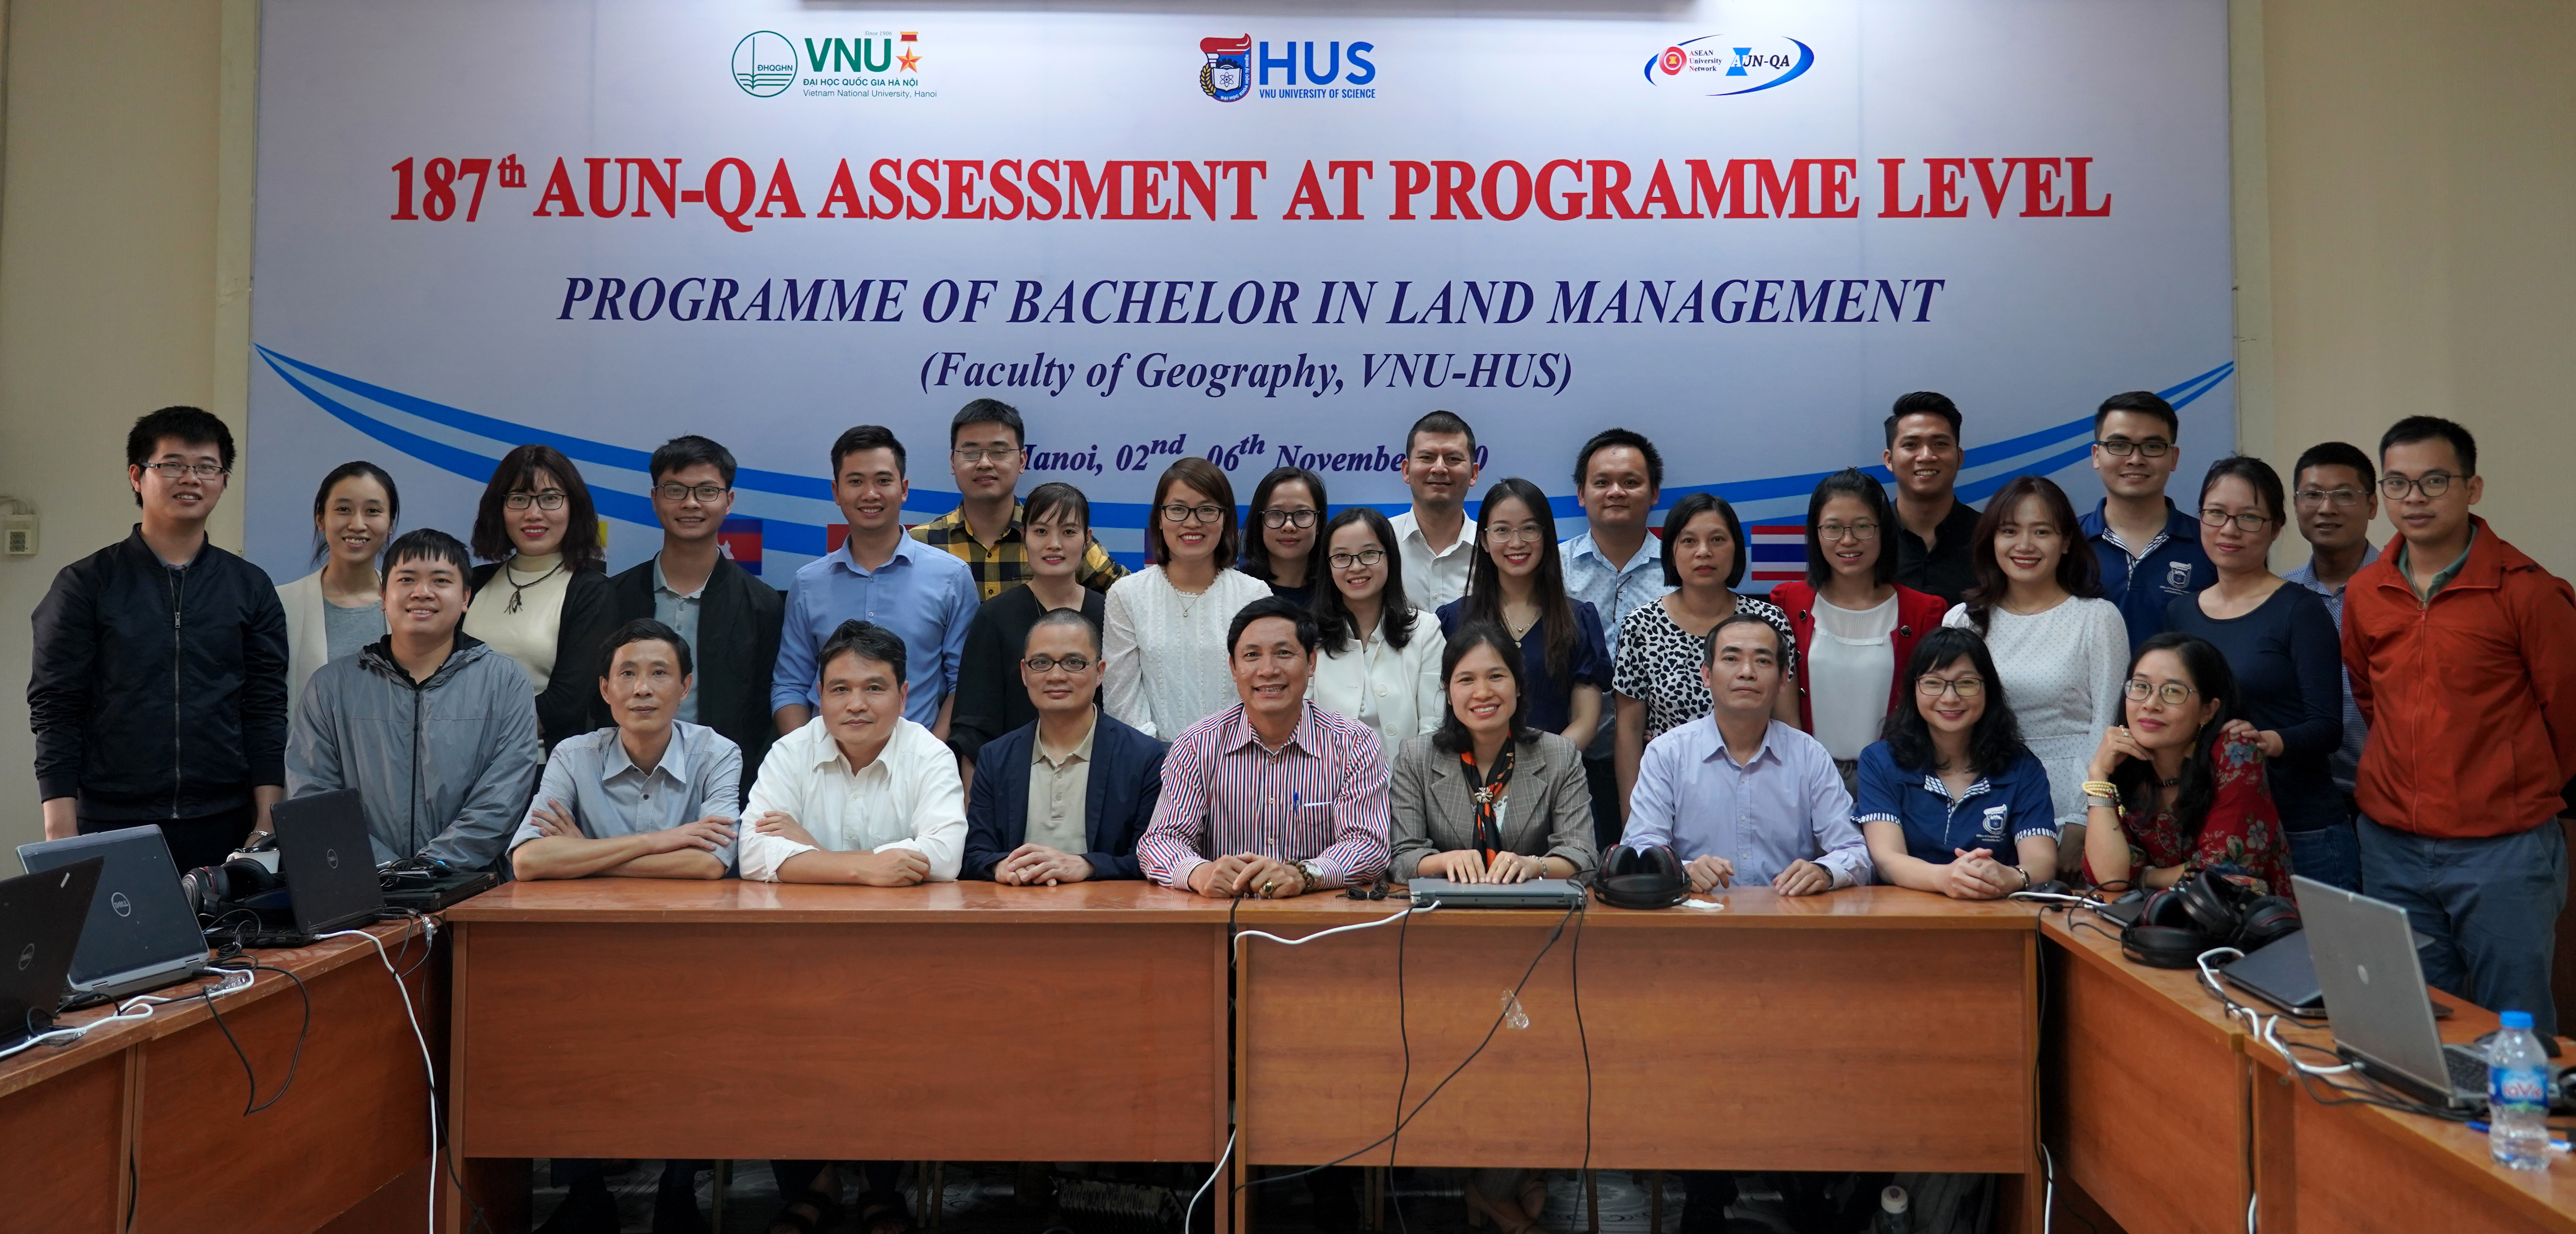 AUN-QA assessment at program level for VNU-HUS has completed